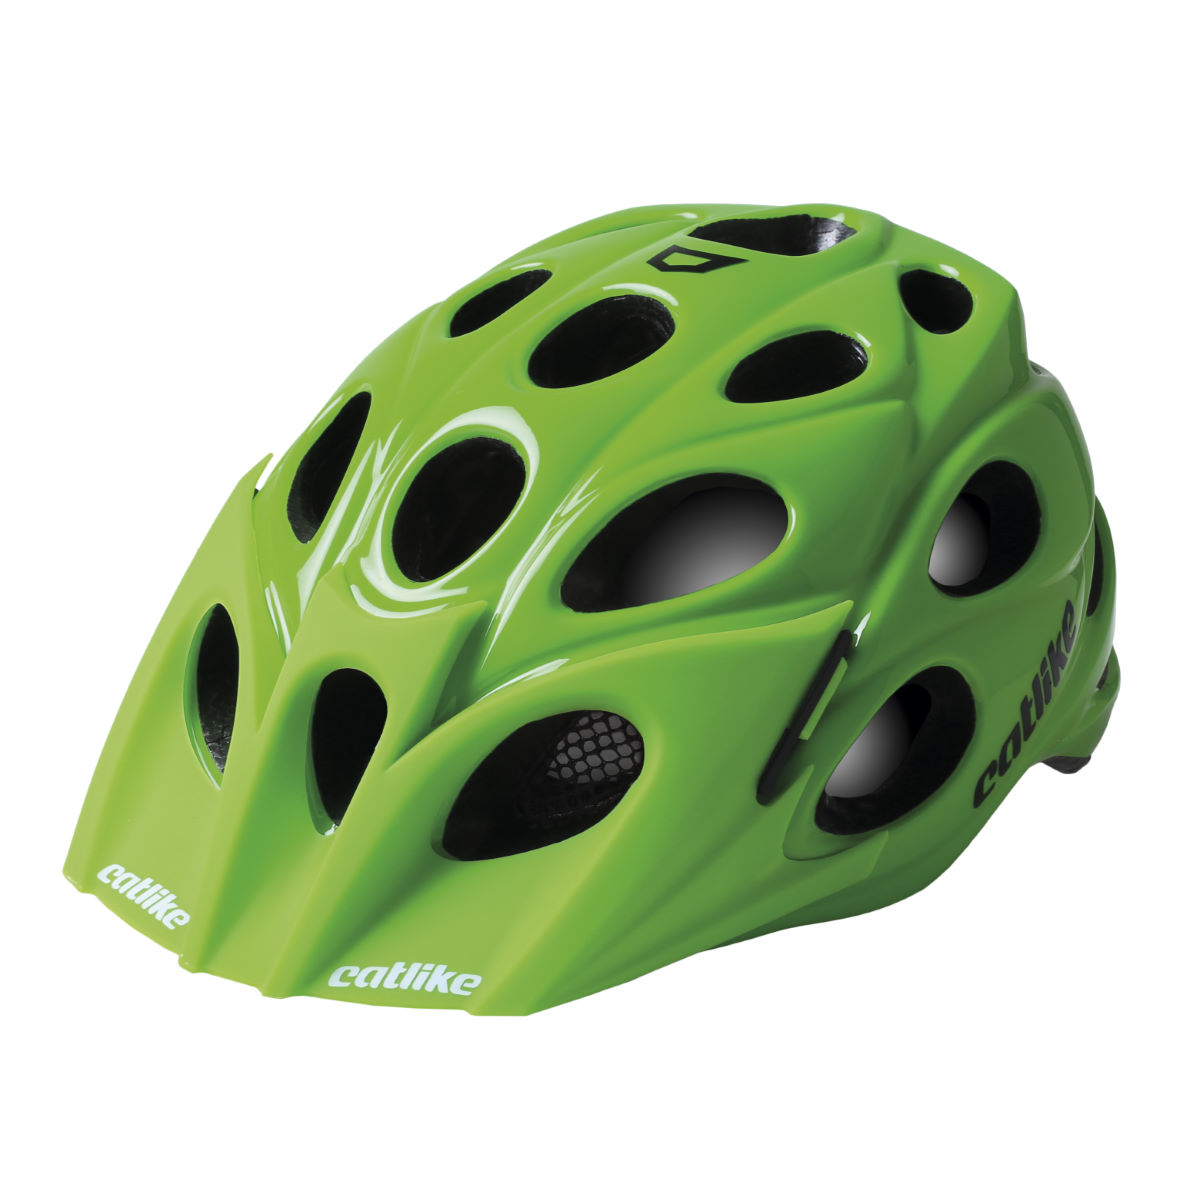 Casque VTT Catlike Leaf - M Green Glossy Casques